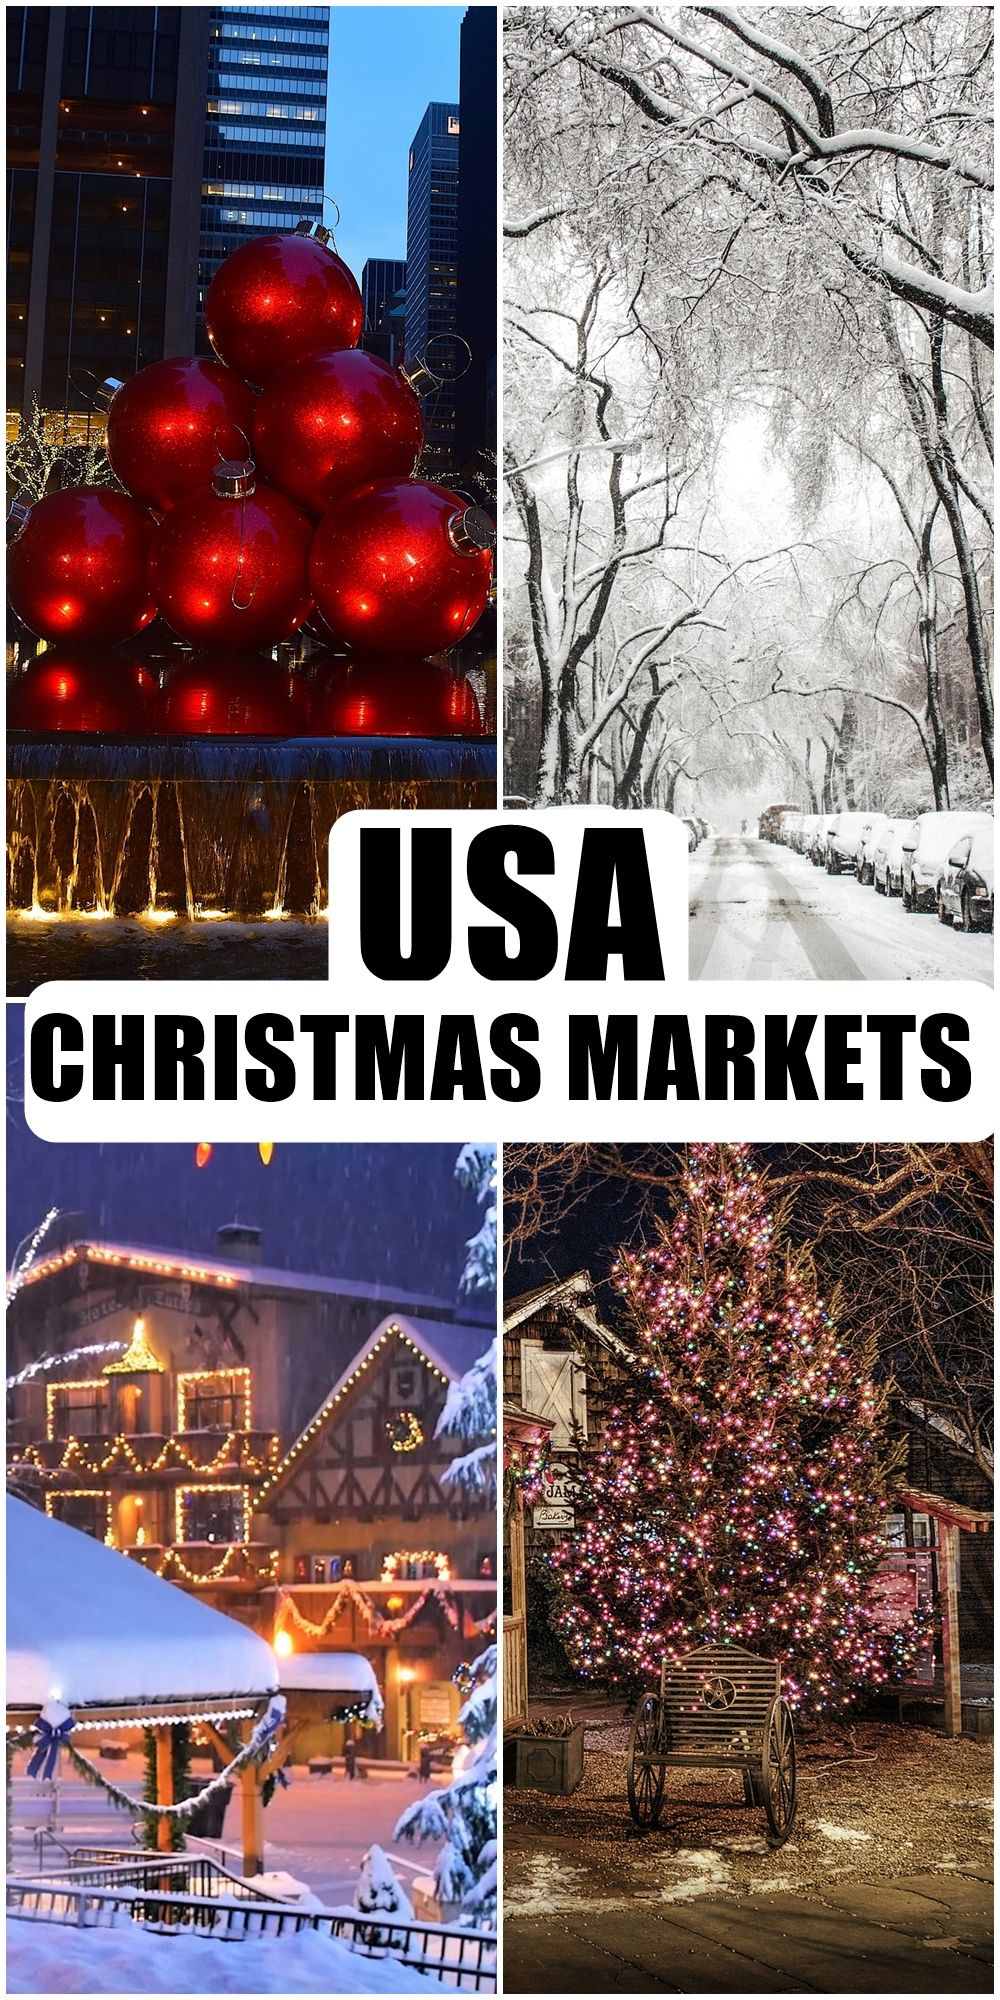 Christmas Market In Usa 2020 USA Christmas Markets in 2020 | Christmas market, Best christmas